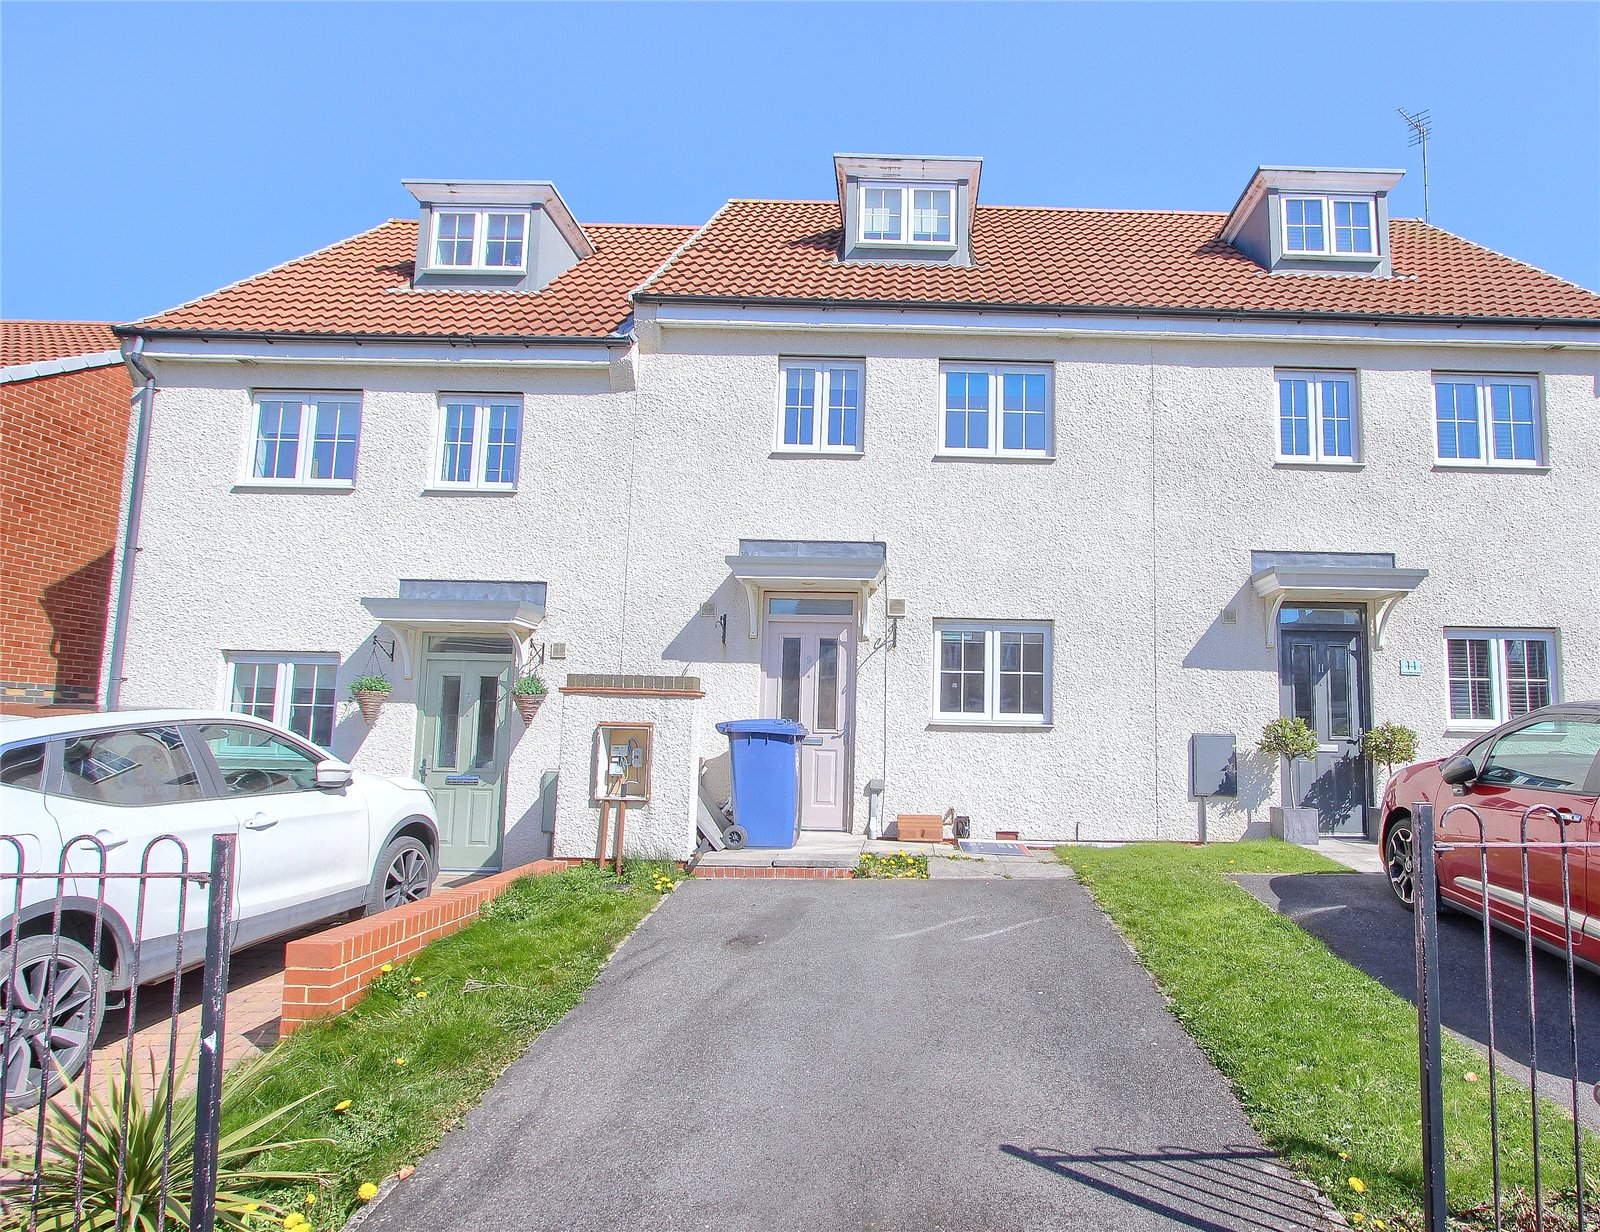 3 bed house for sale in Southfield Road, Marske-by-the-Sea - Property Image 1